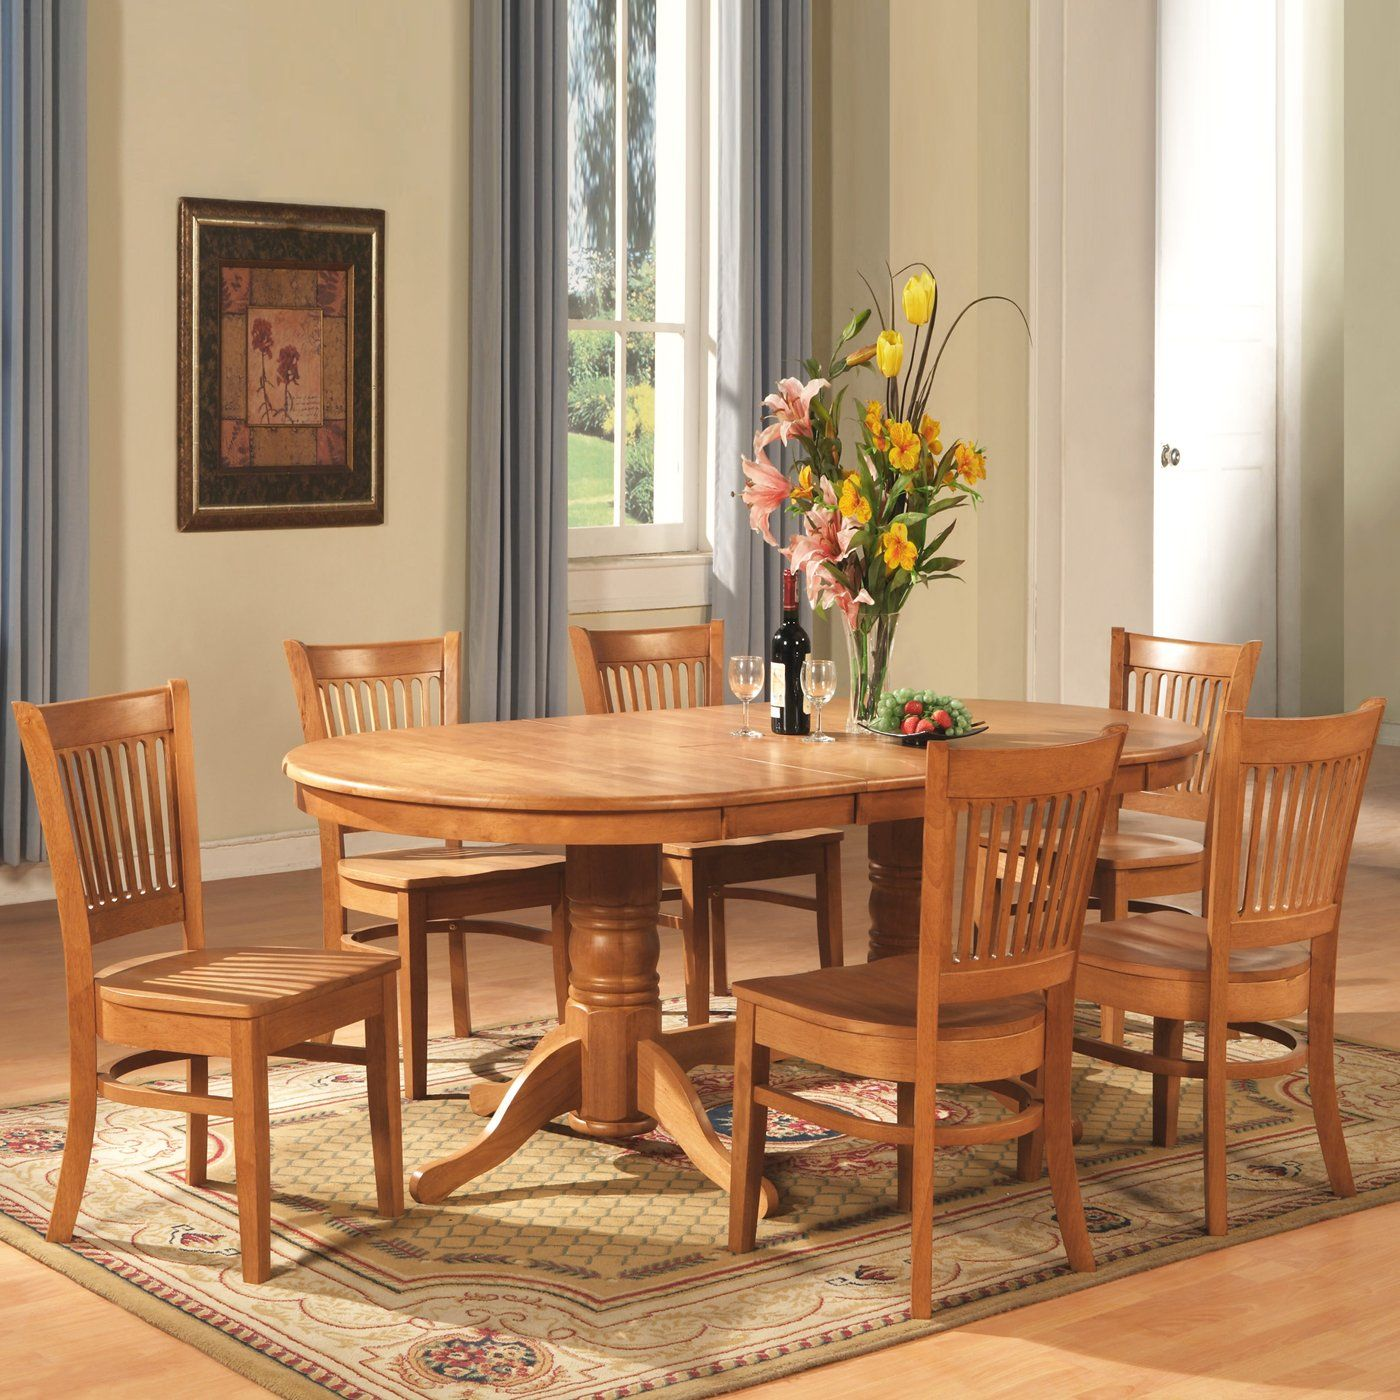 Emejing Dining Room Table With 6 Chairs Contemporary Liltigertoo